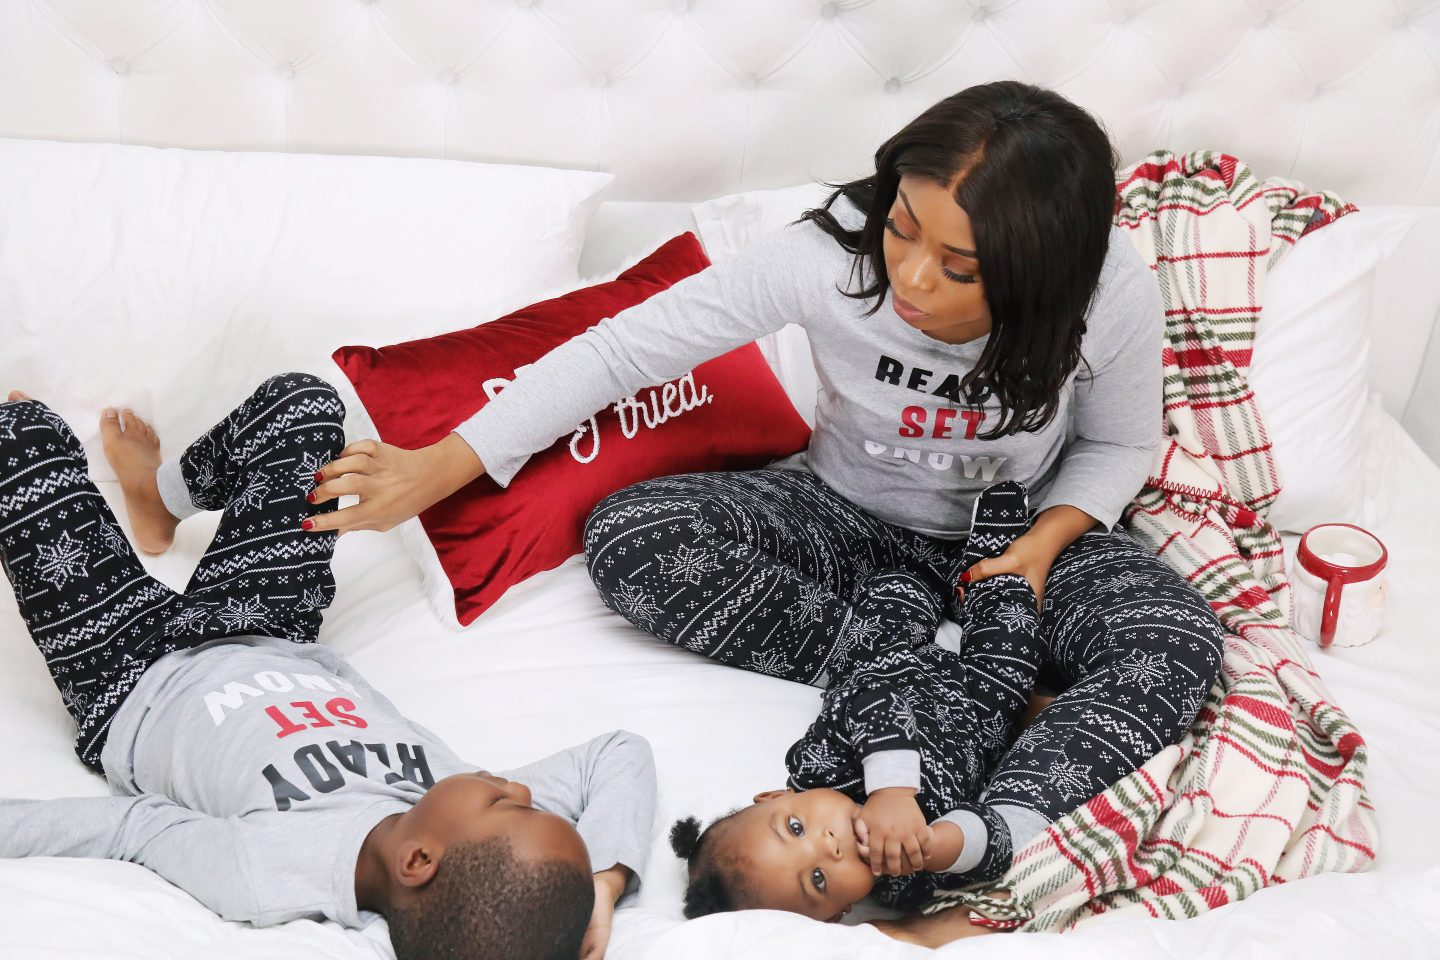 Stella-adewunmi-of-jadore-fashion-and-matching-macys-holiday-pj